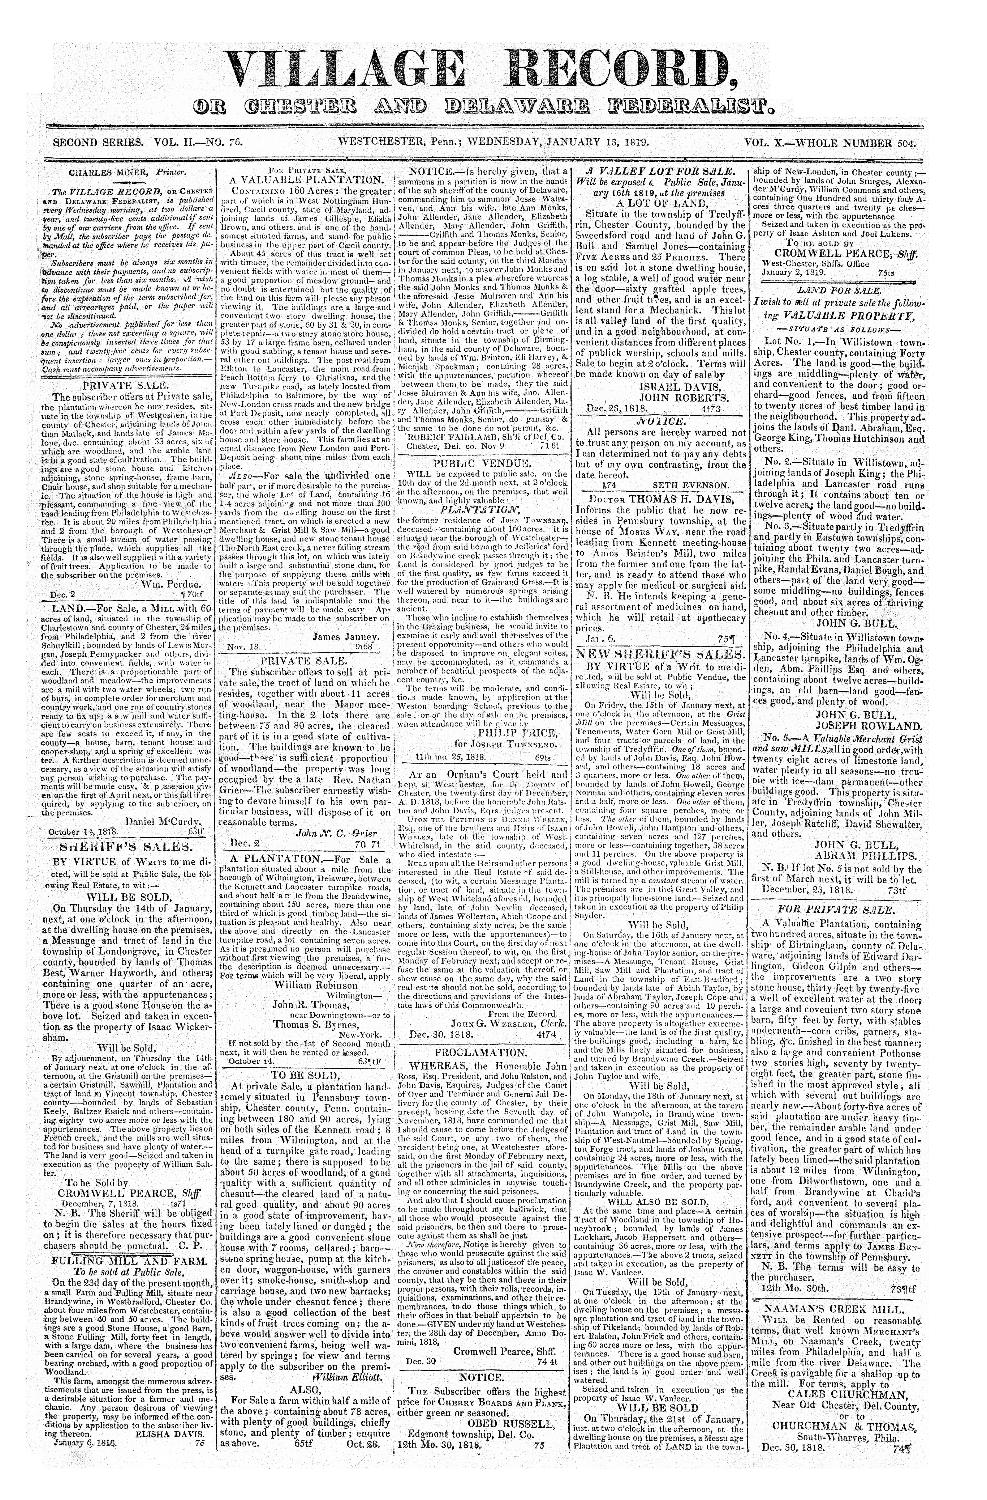 Village record, or, Chester and Delaware federalist - page 1